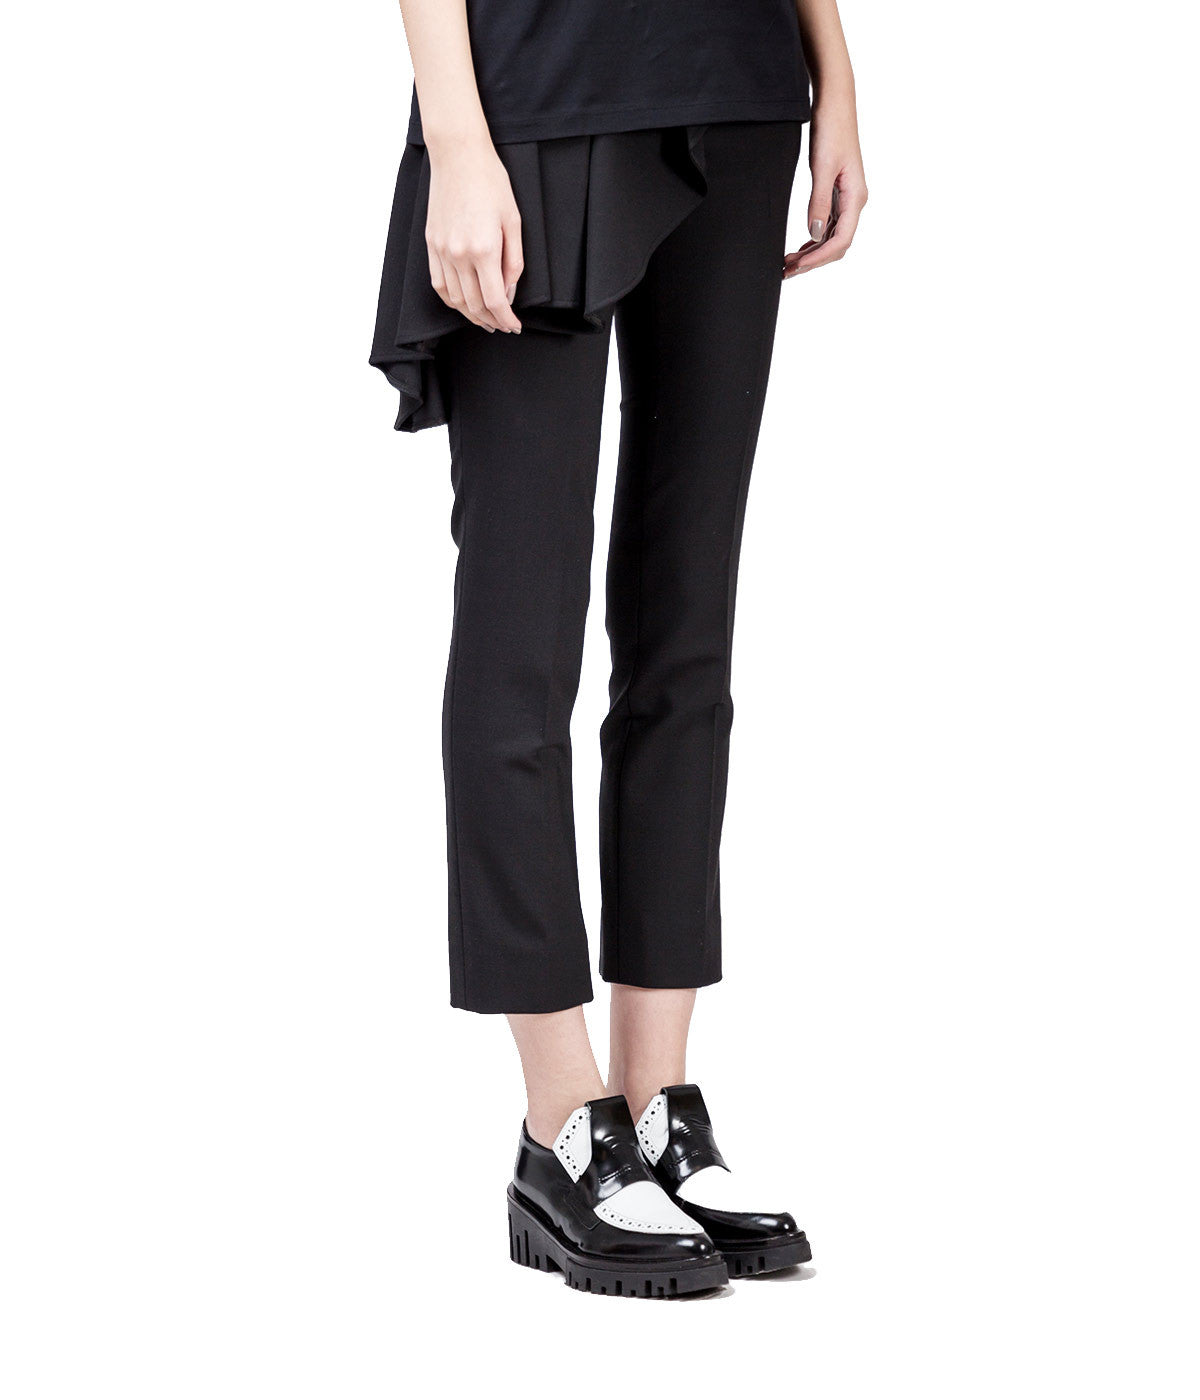 Asymmetric Volant Tube Fit Trousers